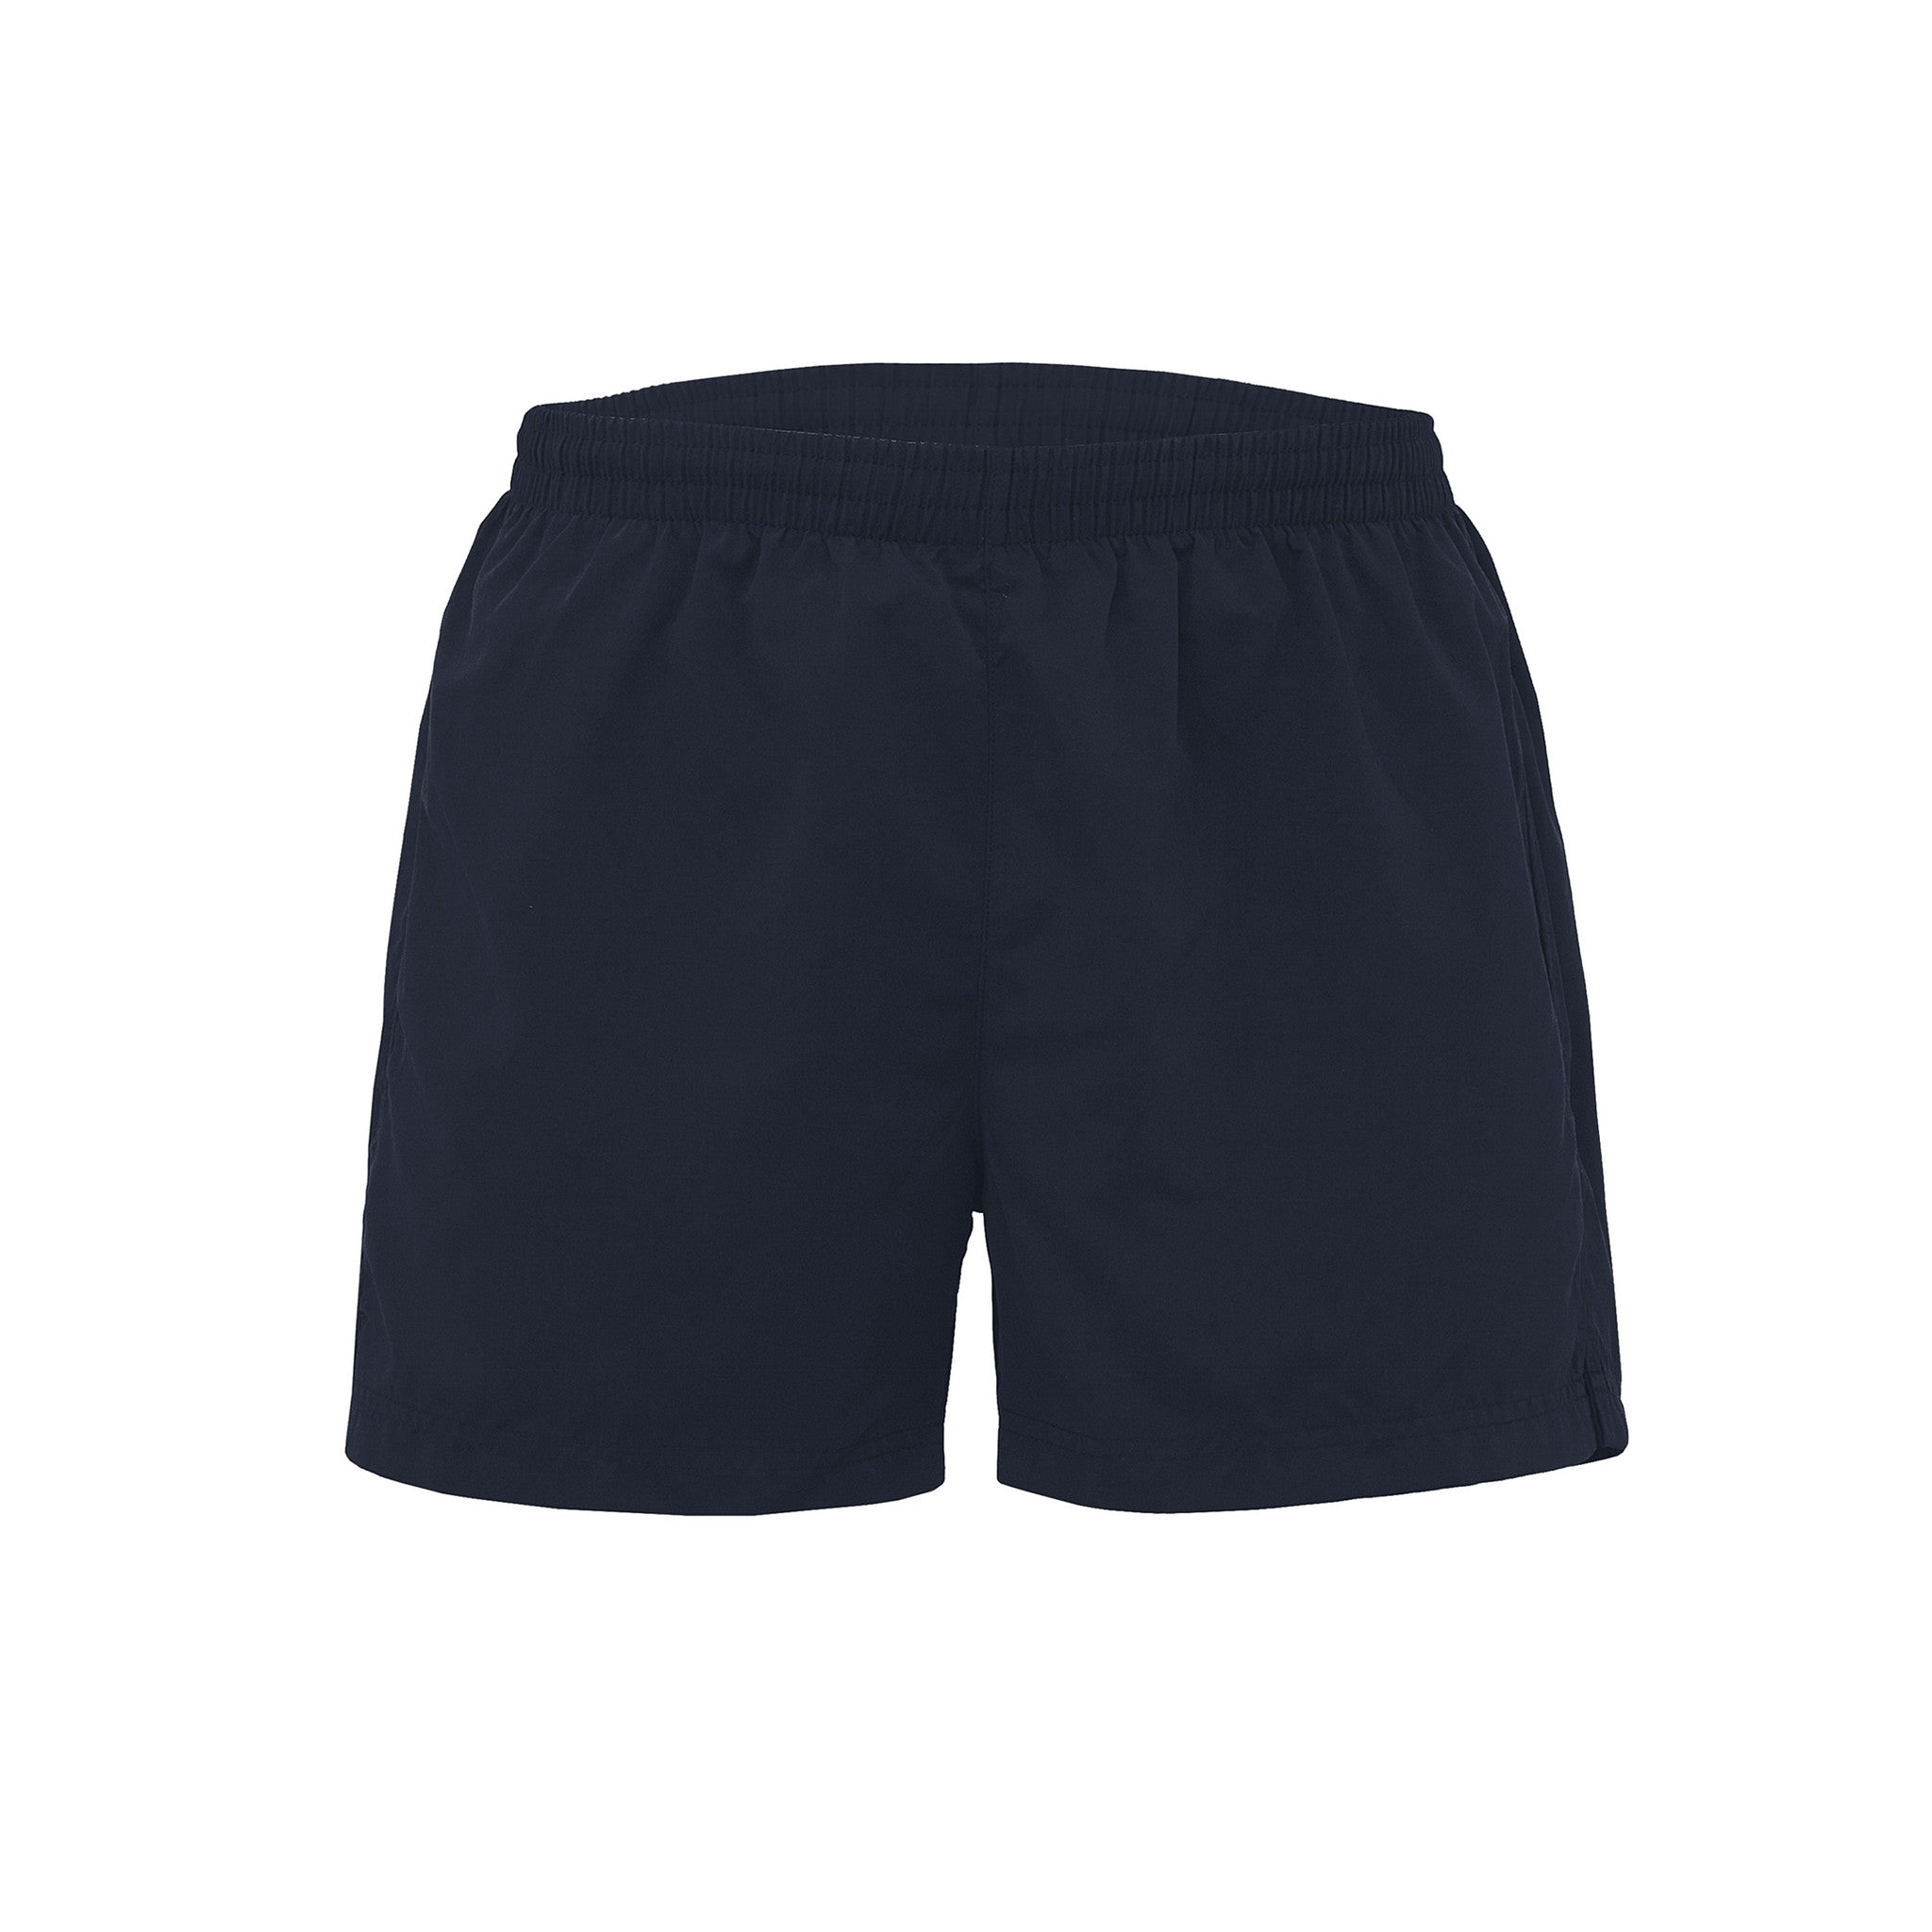 Gear For Life Womens Active Shorts